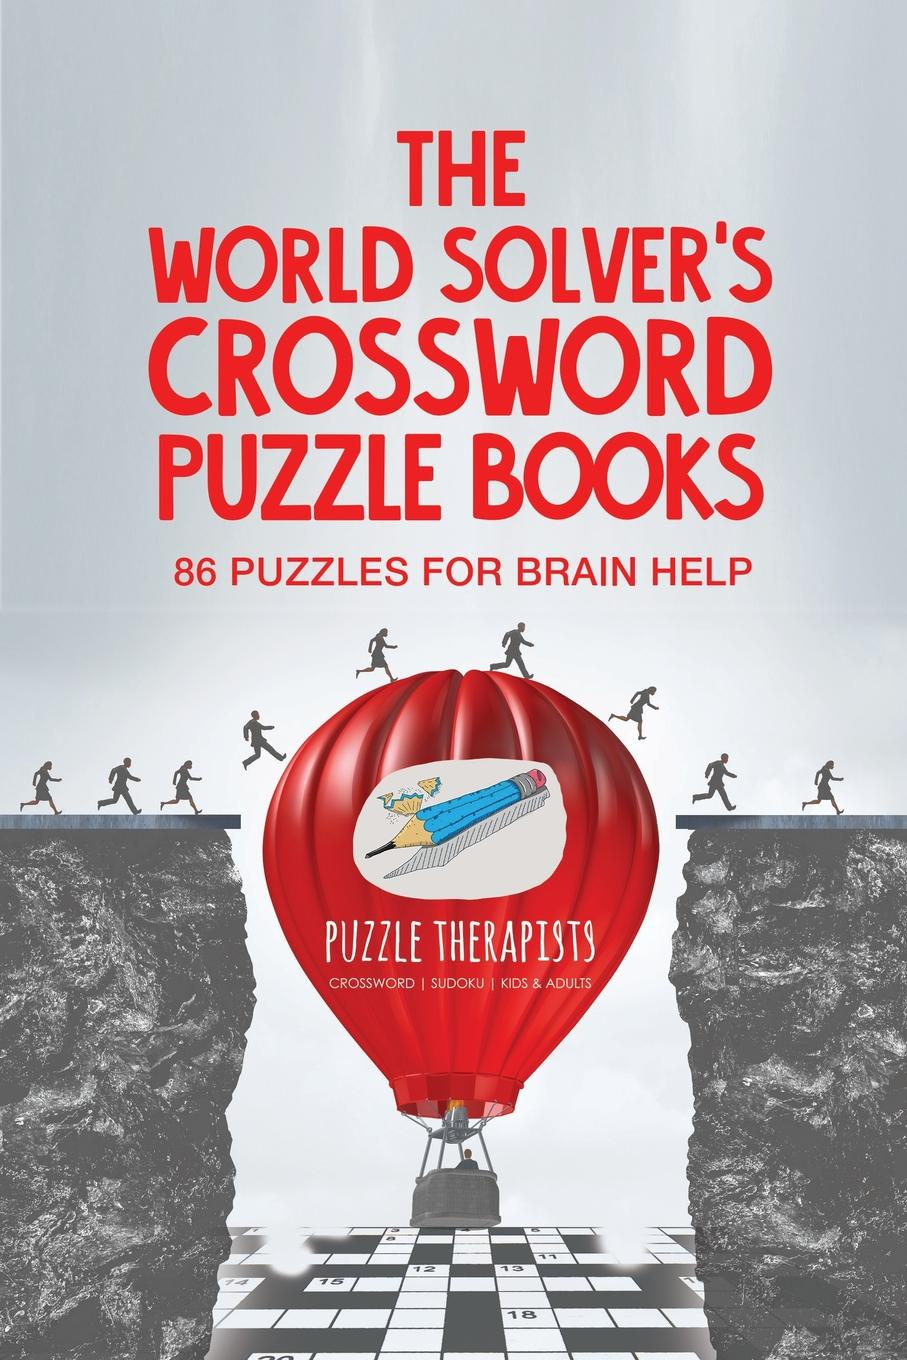 Puzzle Therapist The World Solver's Crossword Puzzle Books . 86 Puzzles for Brain Help thomas fellows forget self help re examining the golden rule